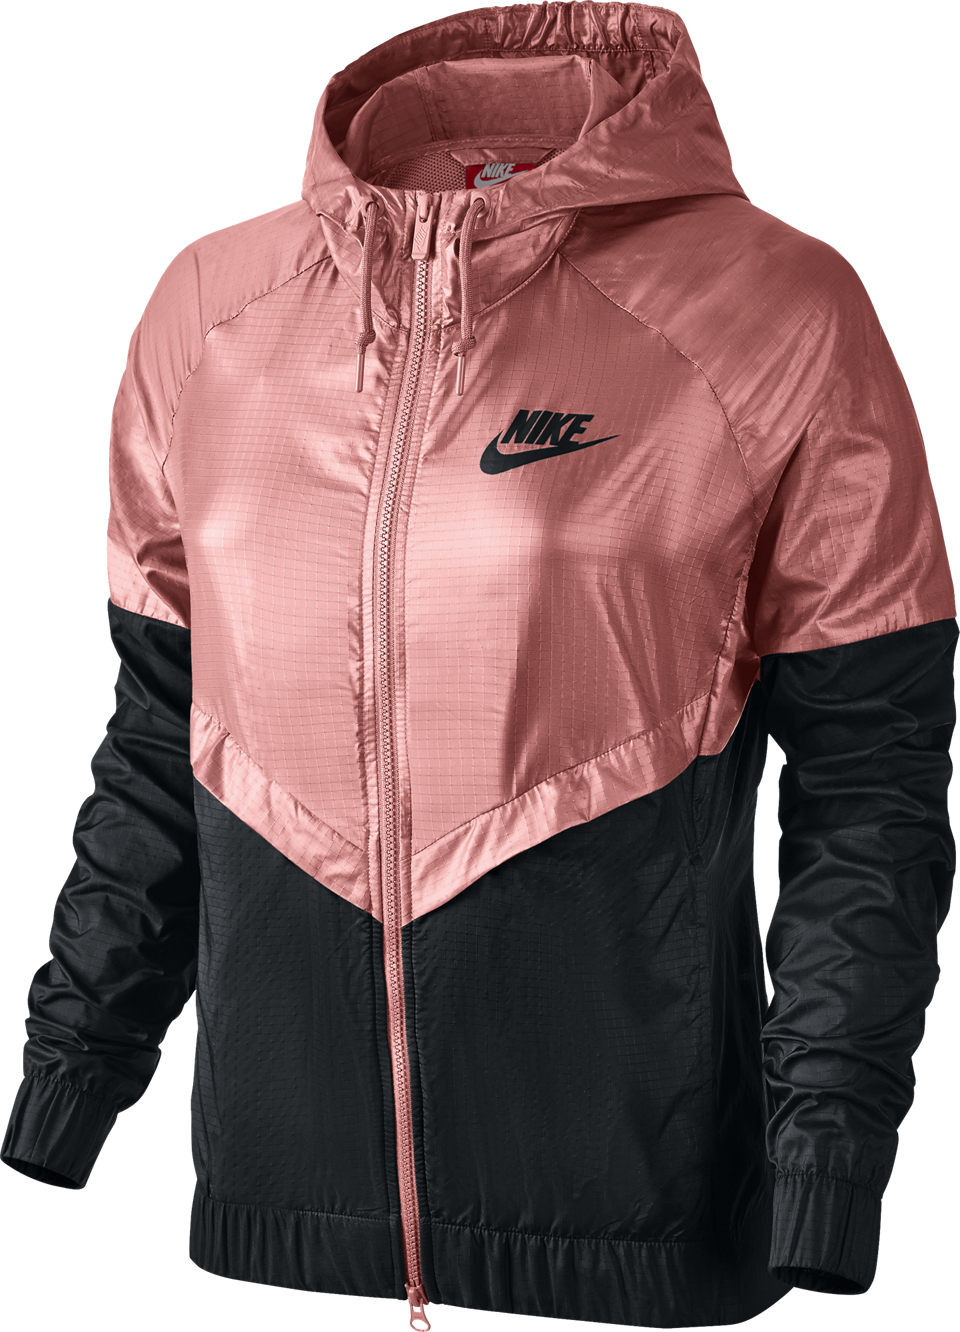 Nike Women's Sportswear Windrunner Jacket Vivid Melon/Black